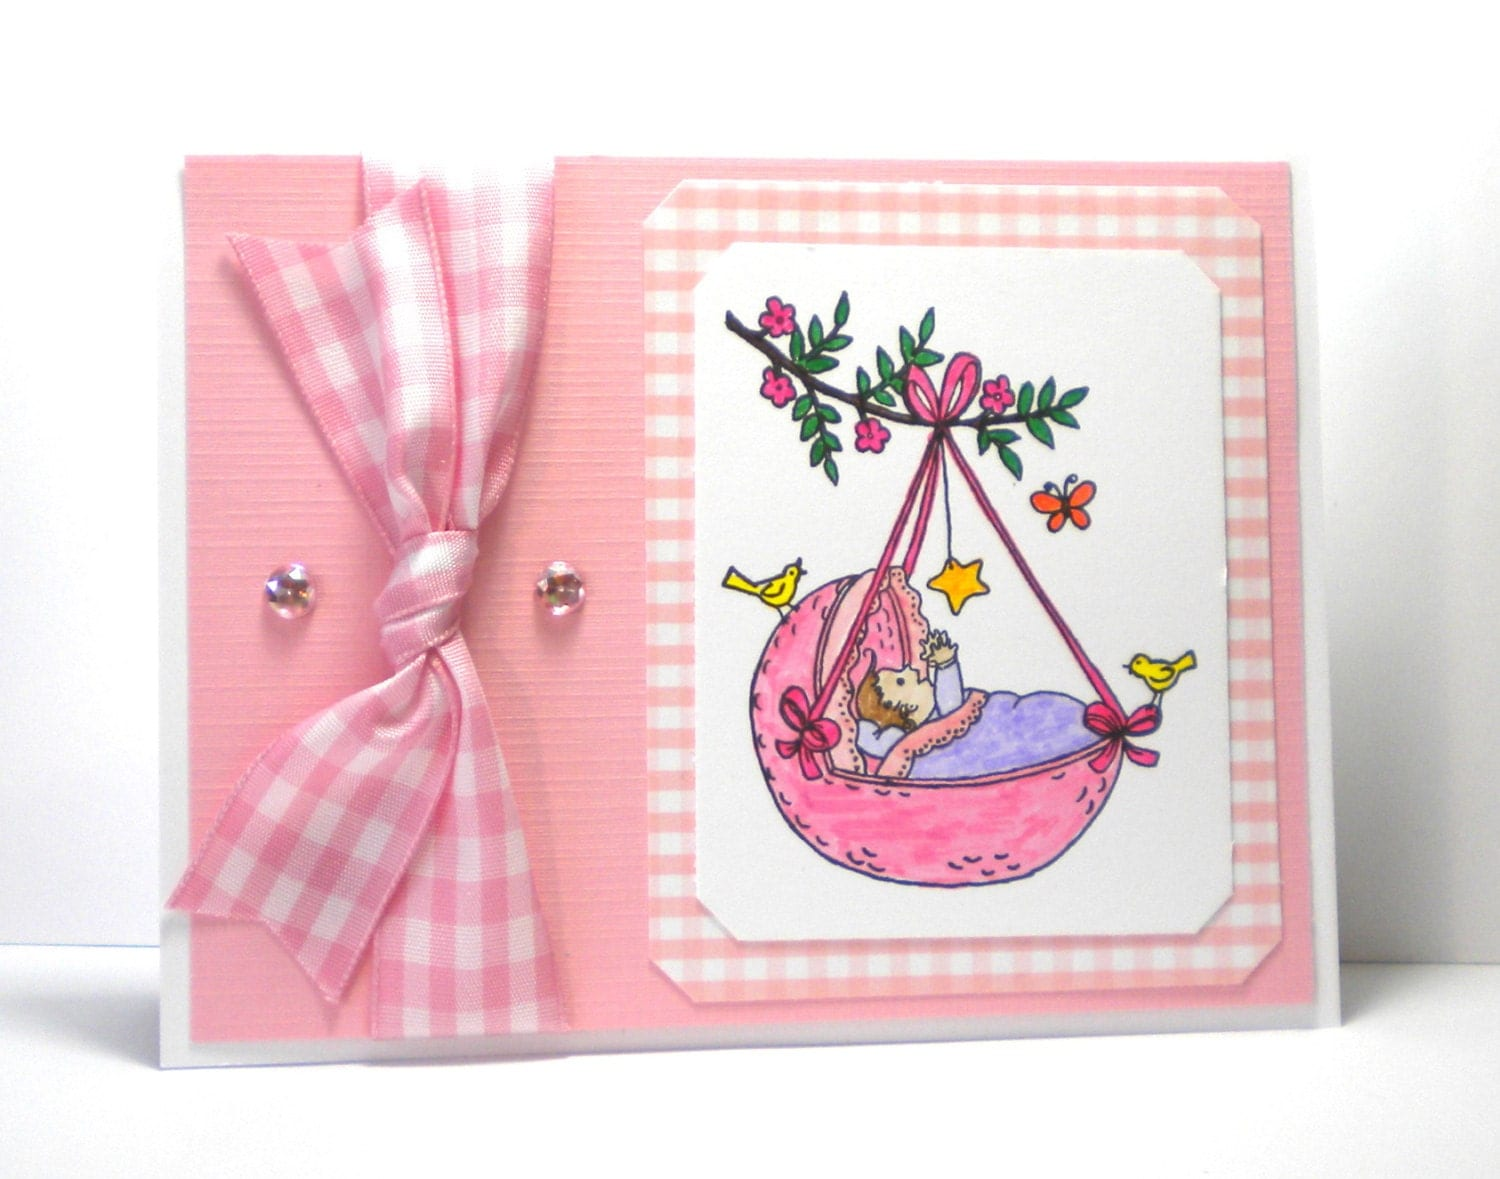 New greeting card message for new baby girl greeting for girl card baby new message girl customcardsbybonnie a girl by greeting its baby newborn m4hsunfo